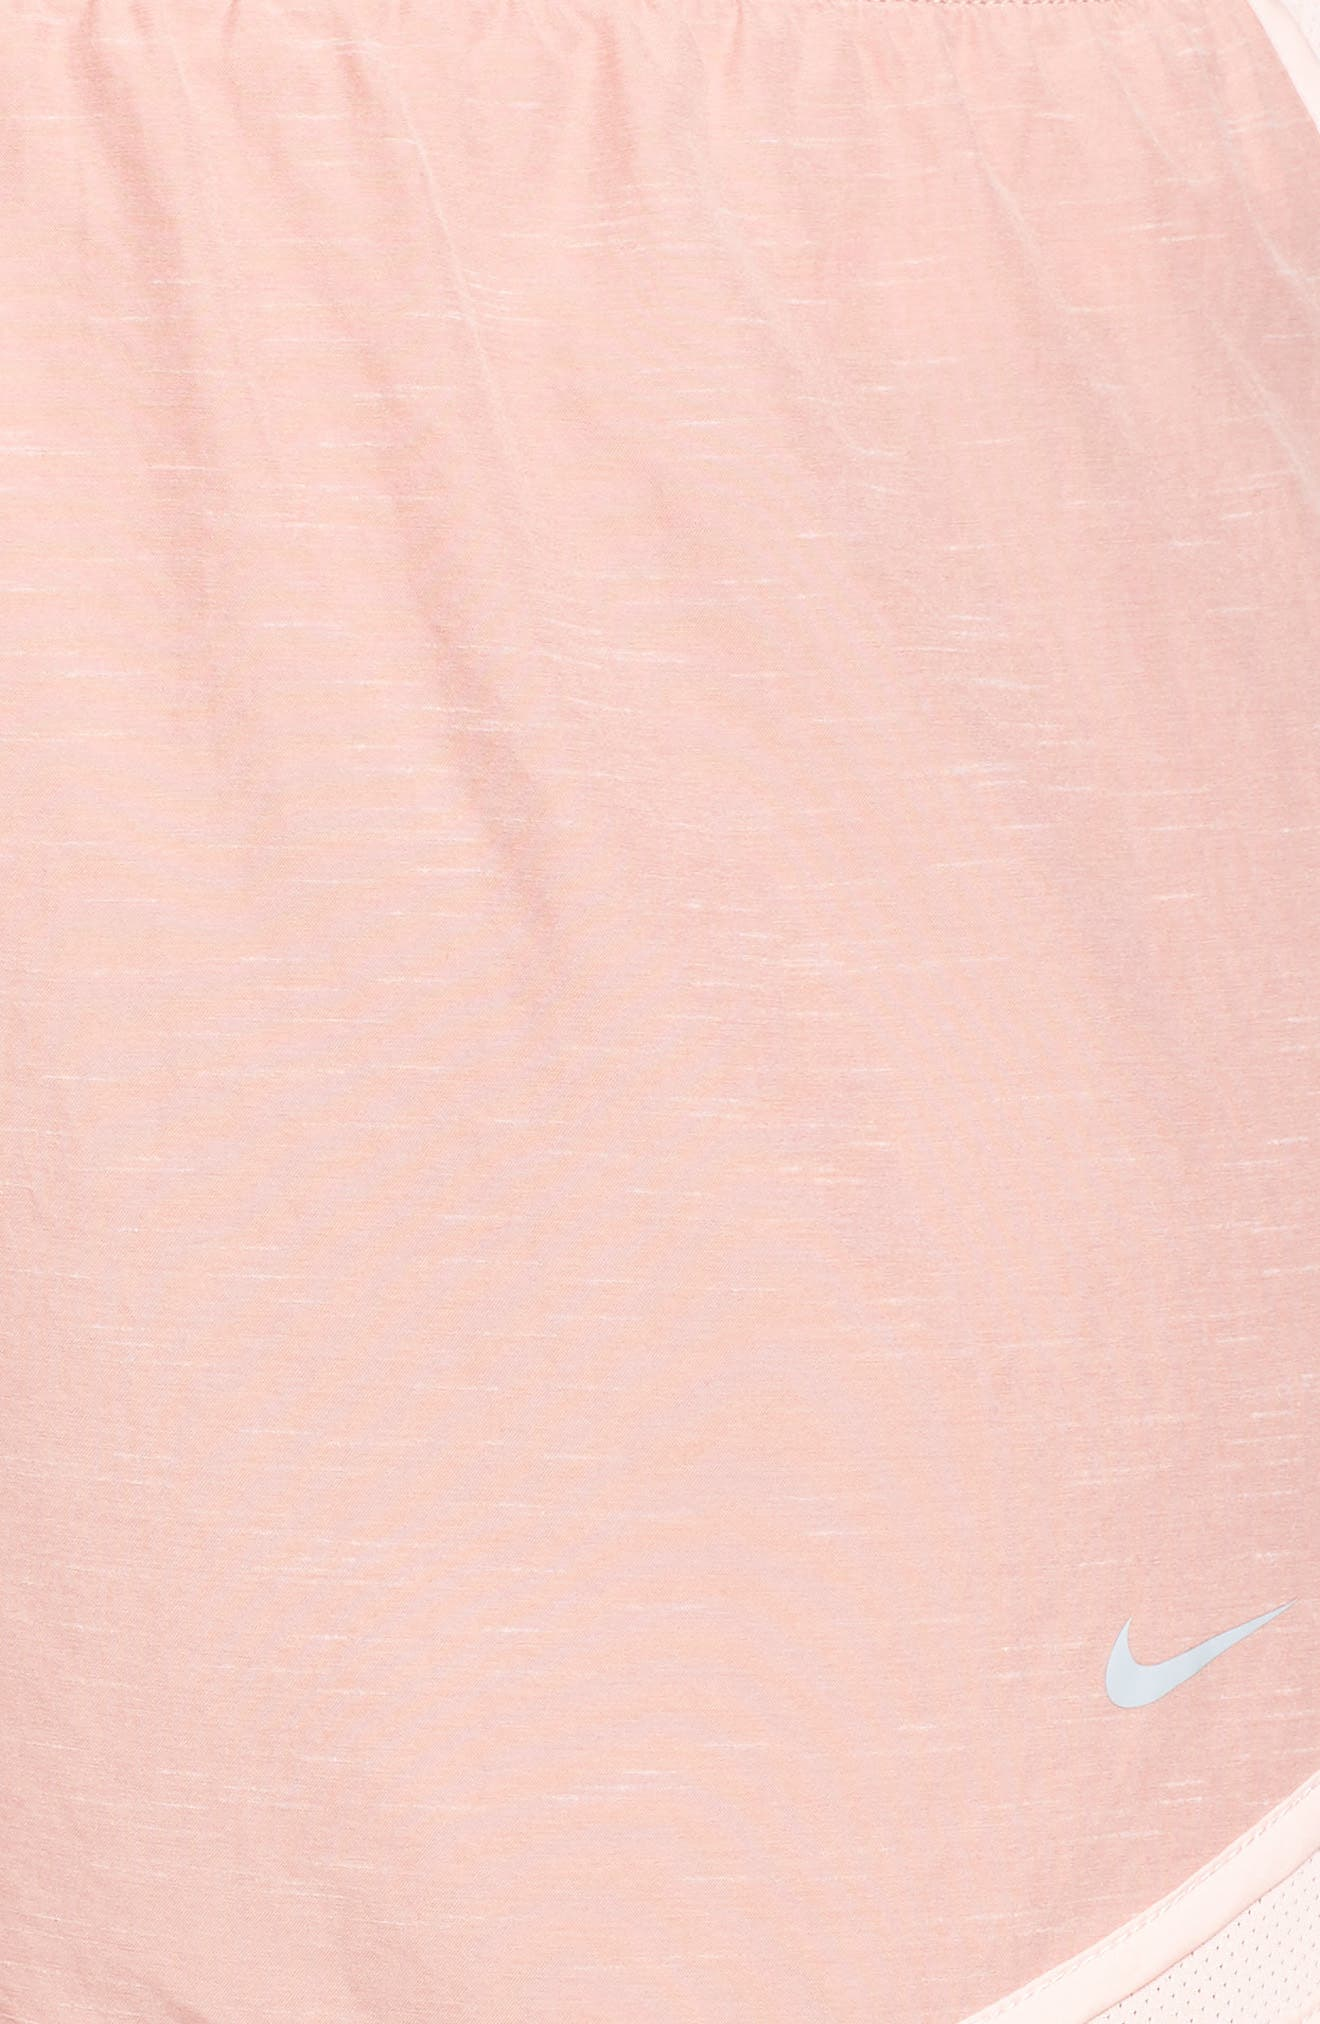 Dry Tempo High Rise Running Shorts,                             Alternate thumbnail 6, color,                             RUST PINK/ STORM PINK